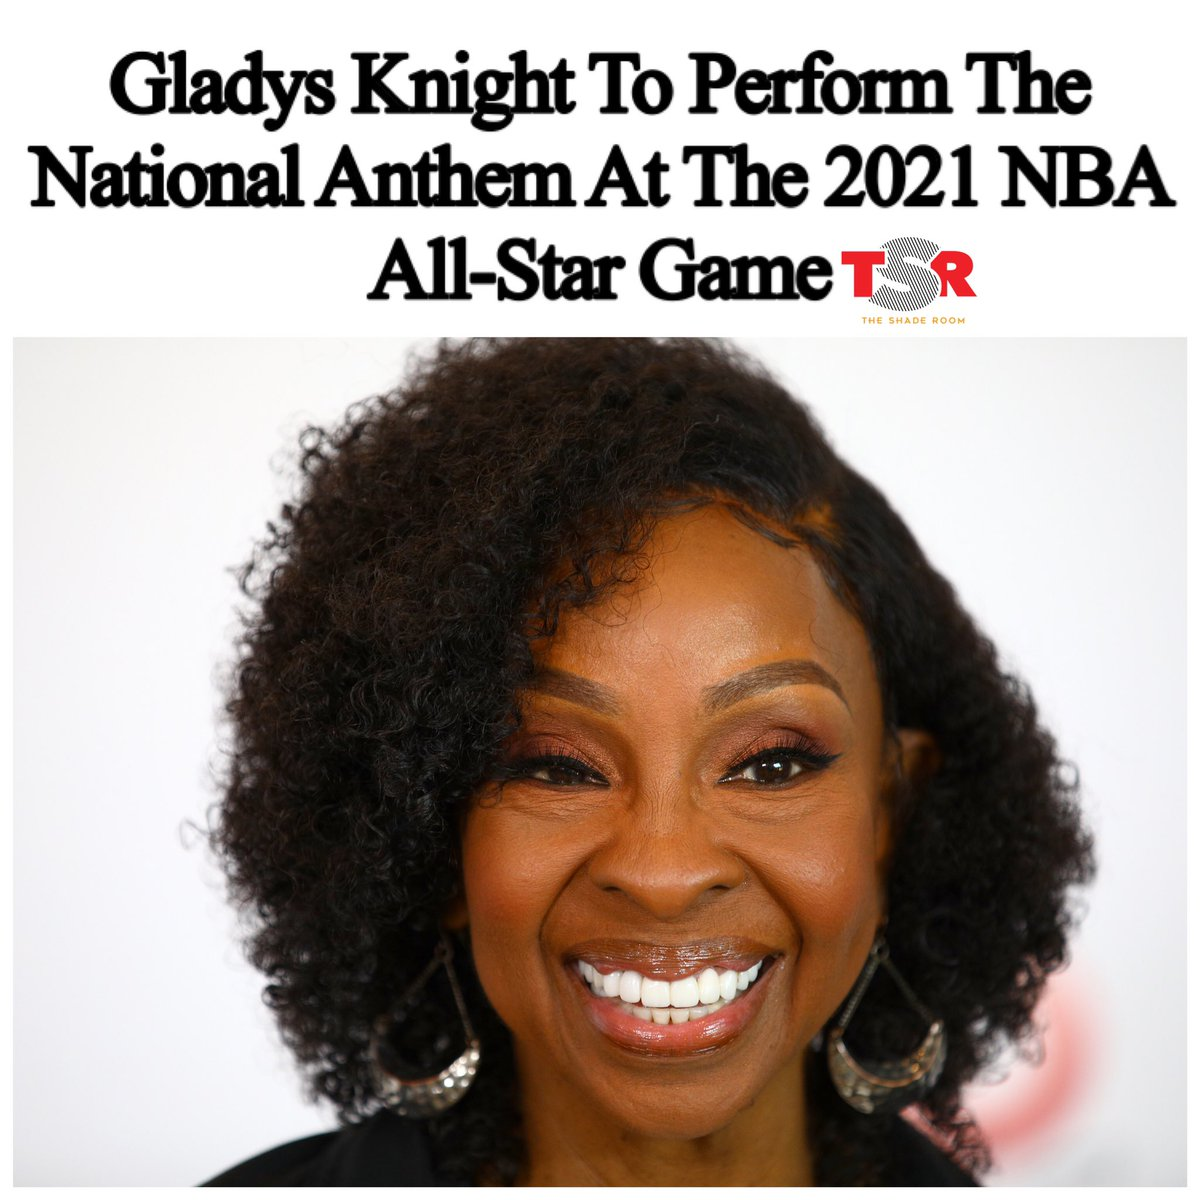 On Wednesday, the @NBA announced that Gladys Knight will perform the national anthem at the 2021 NBA All-Star Game taking place in Atlanta. (📸:@GettyImages)